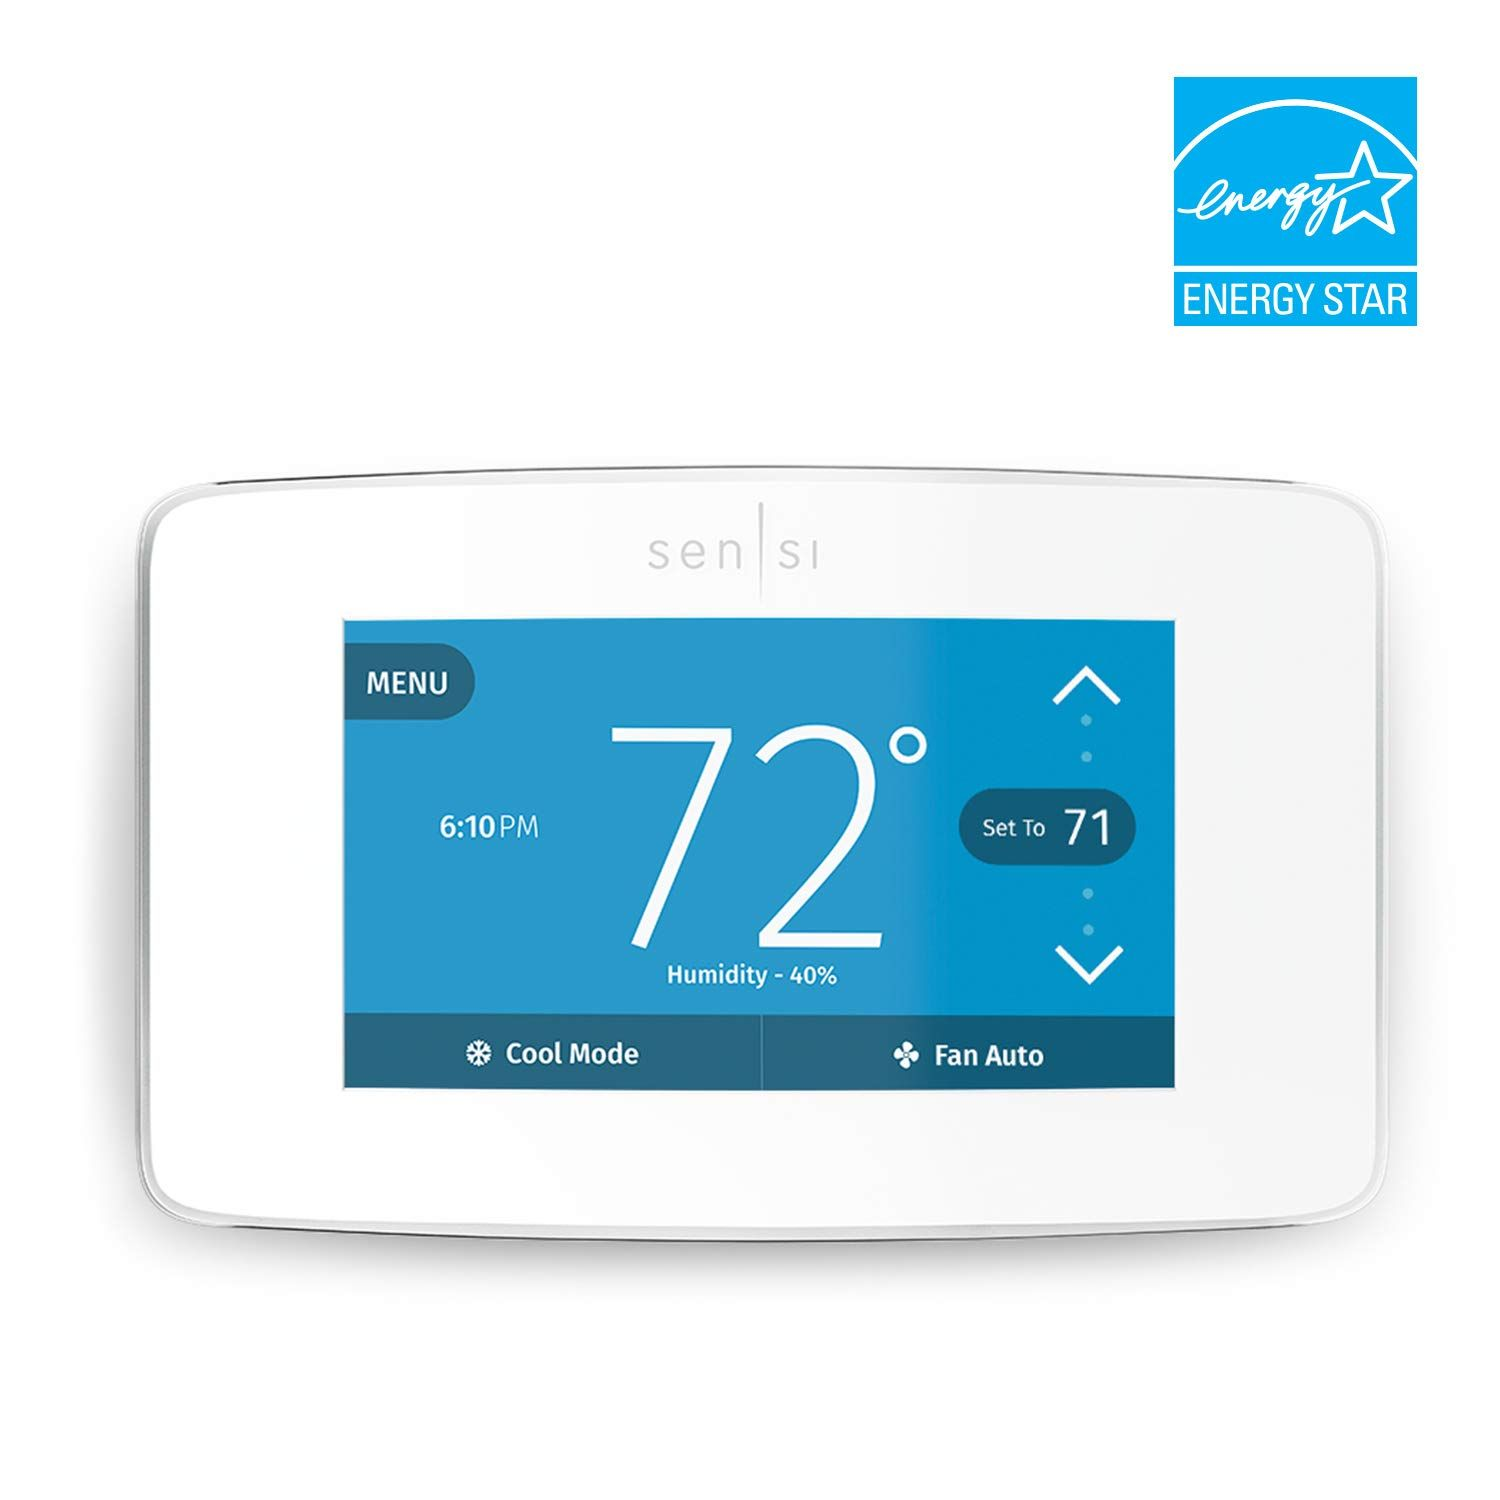 Emerson Sensi Touch Wi Fi Thermostat With Touchscreen Color Display White Energy Star Certified Works With Alexa Wink Smart Home Smart Thermostats